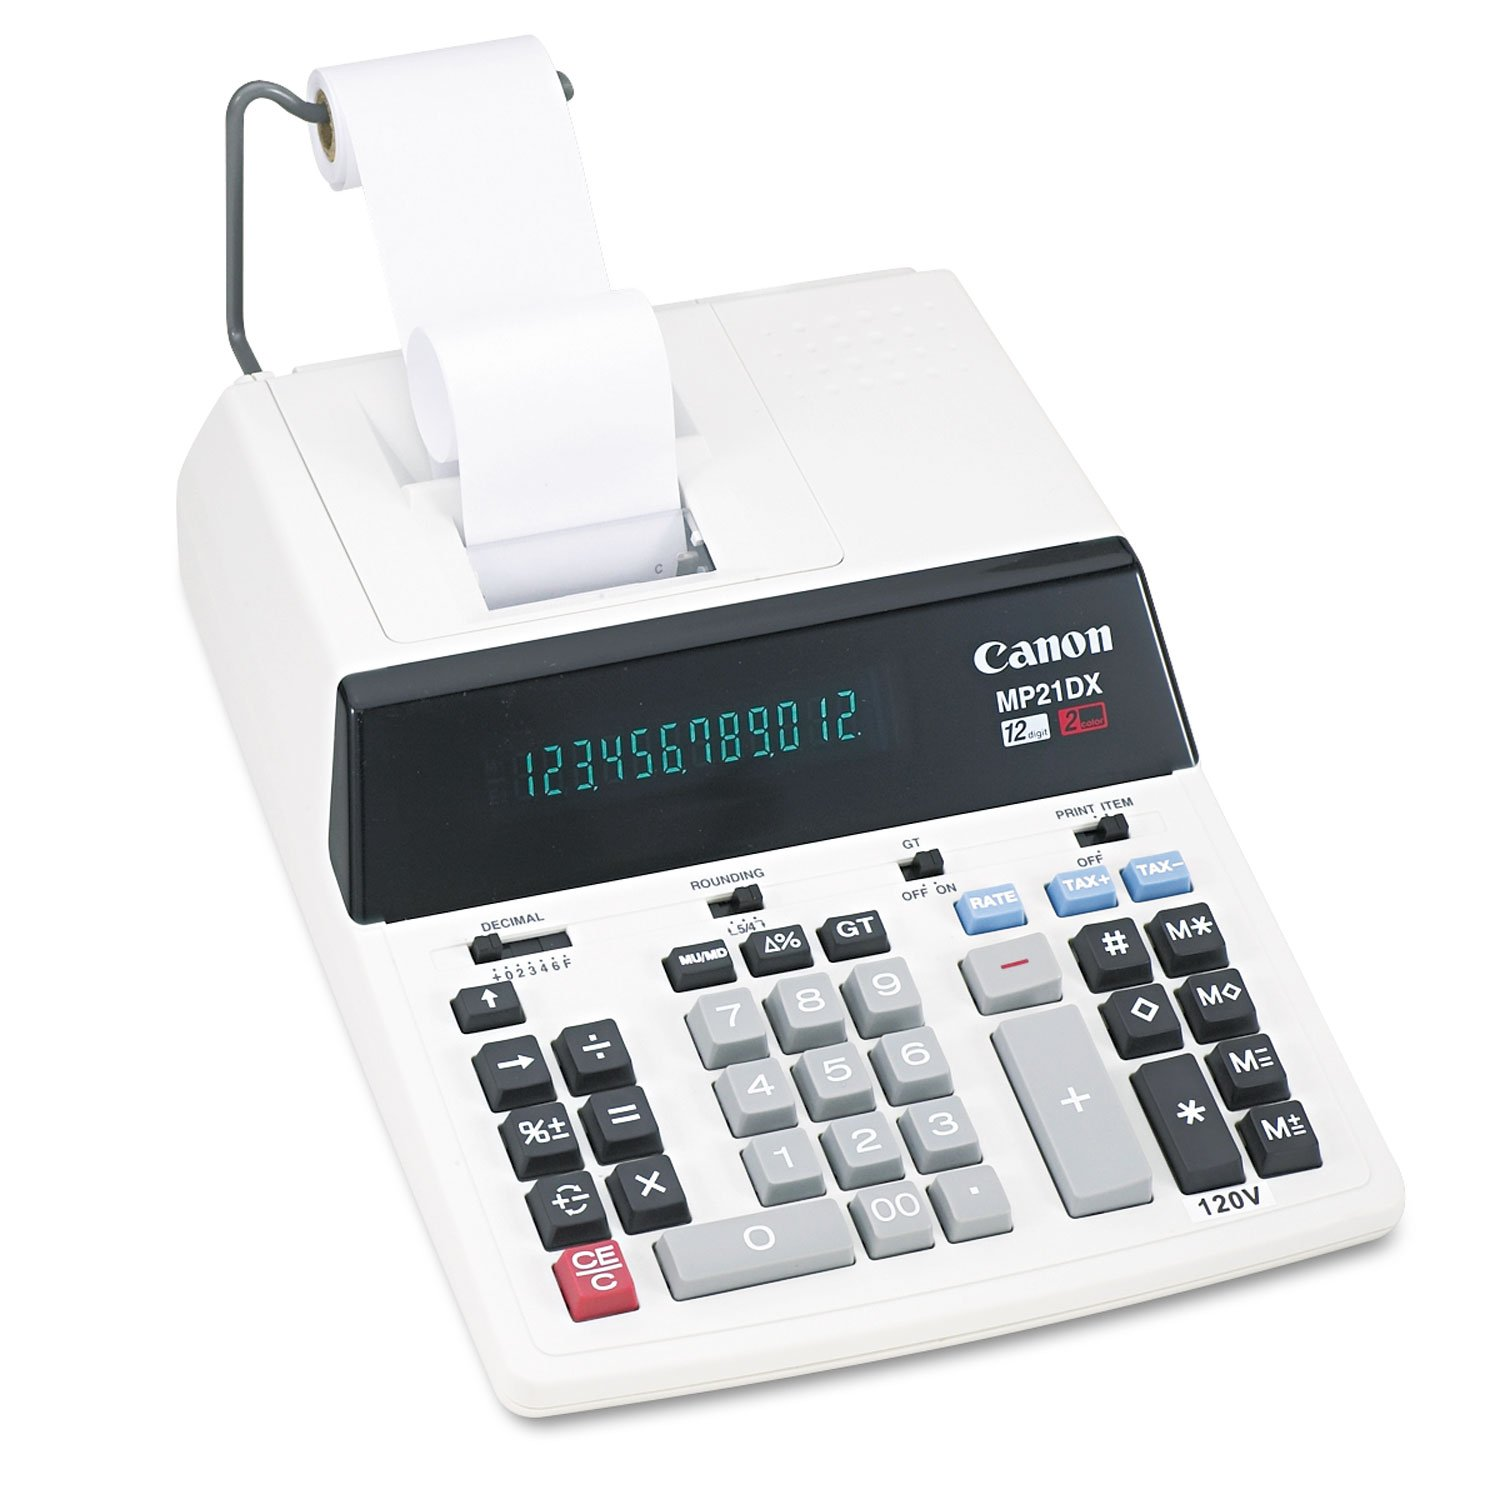 Canon CNMMP21DX MP21DX Two-Color Printing Calculator by Canon